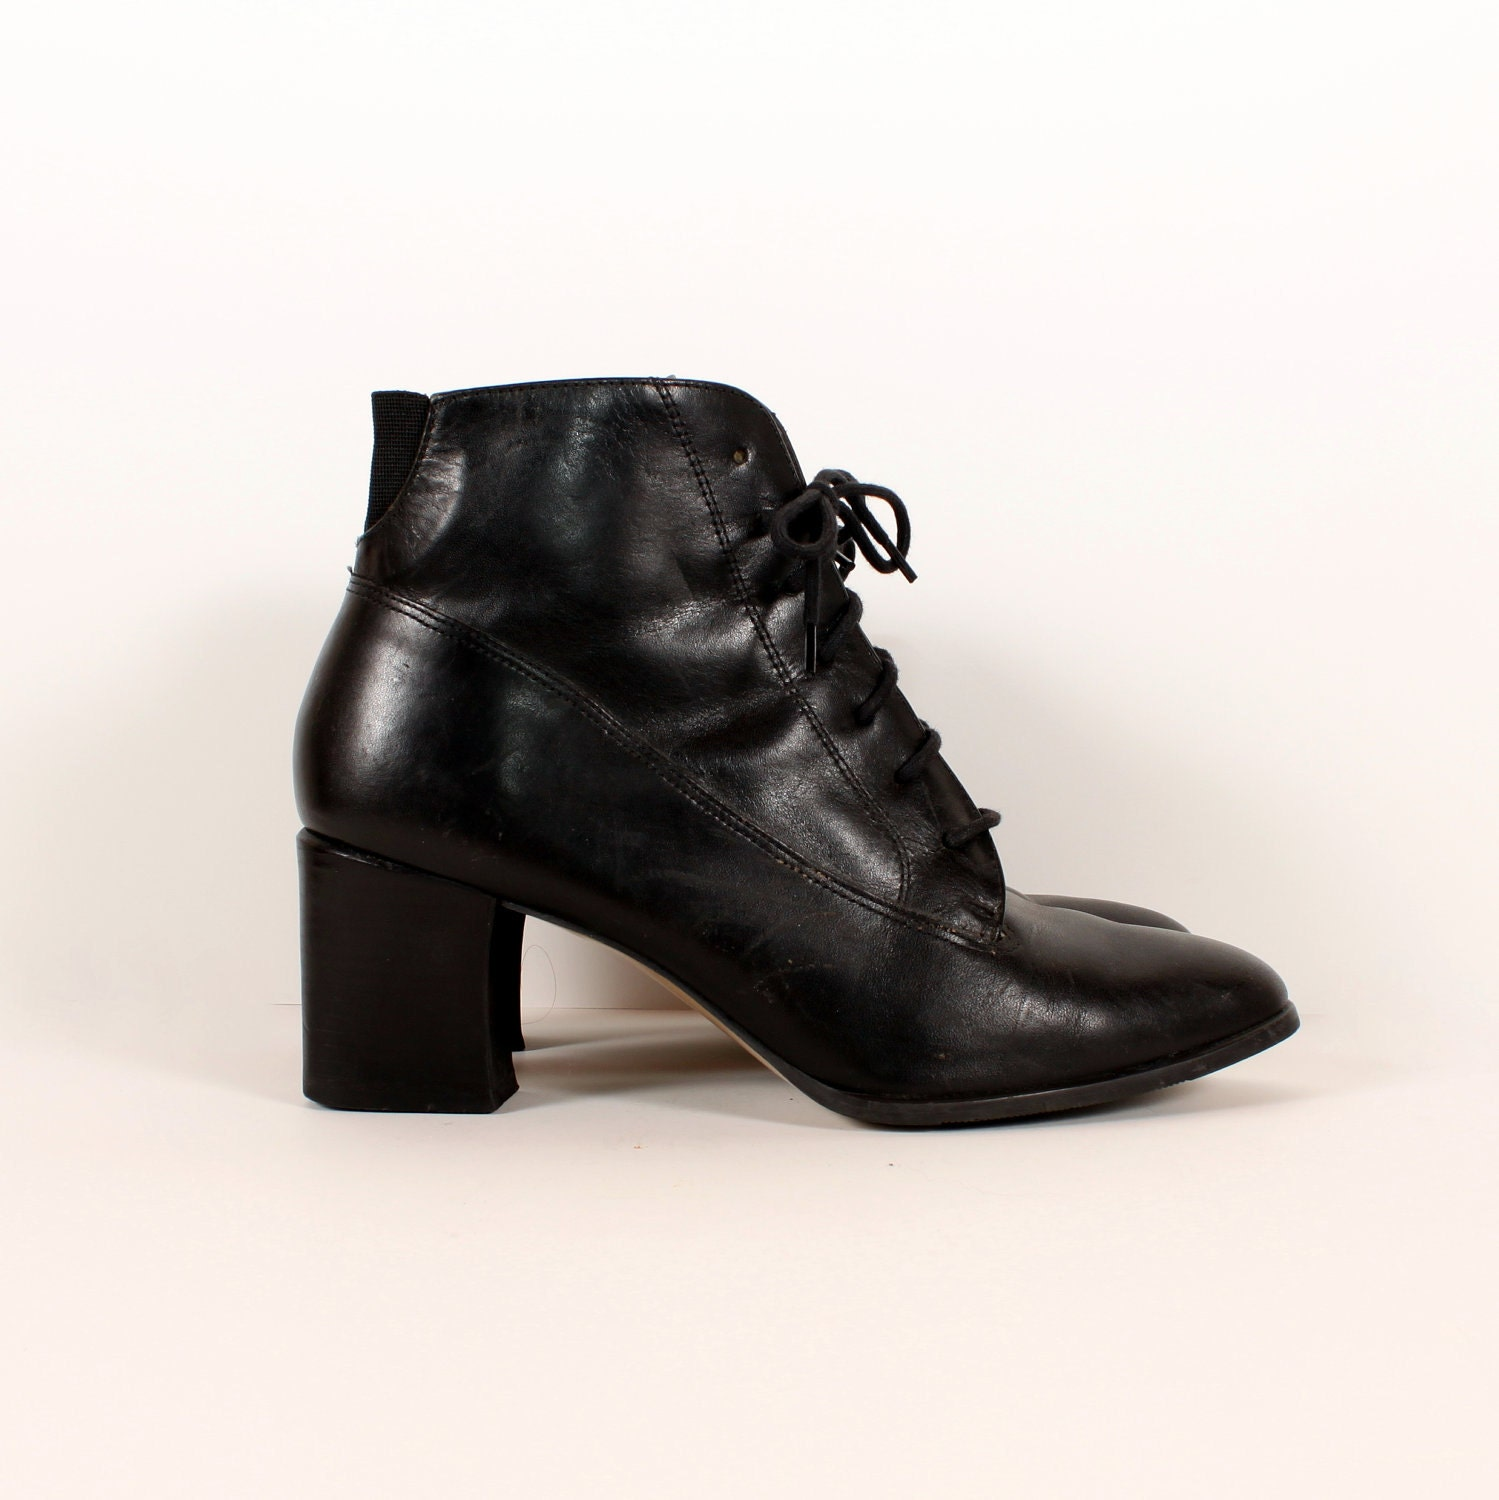 vintage 90s lace up boots black leather by